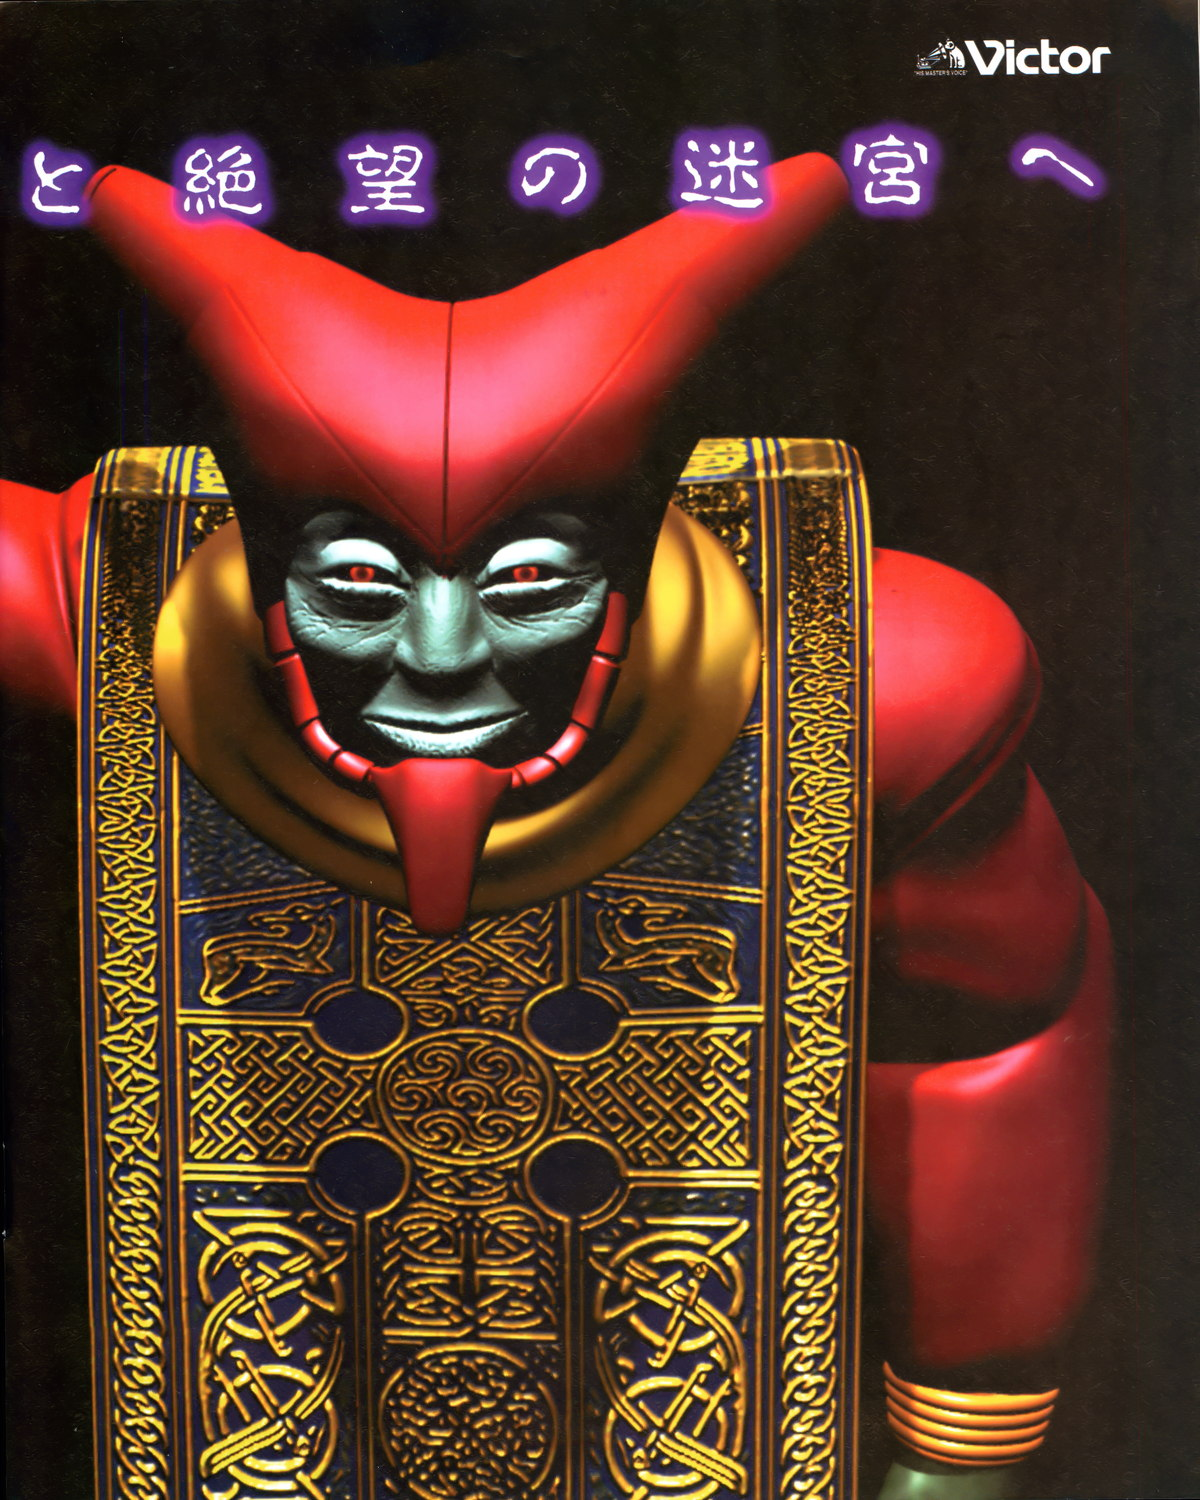 Dungeon Master Nexus Advertisement published in Japanese magazine 'Sega Saturn Magazine', Vol 12 24 April 1998, Page 3